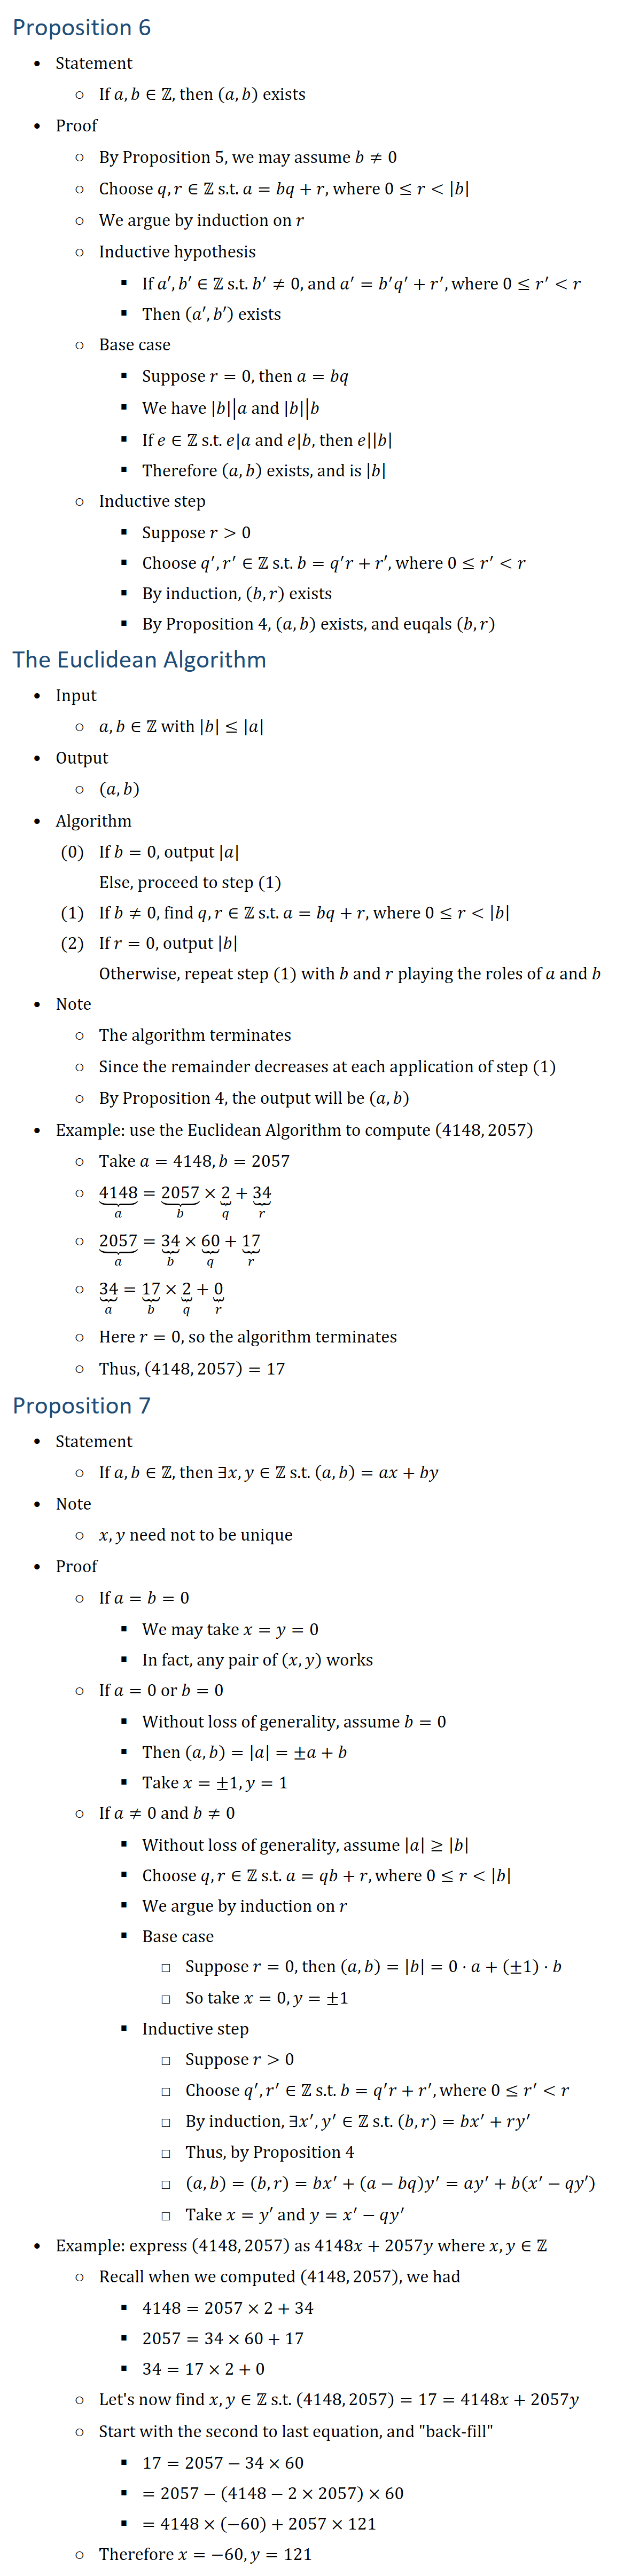 Proposition 6 • Statement ○ If a,b∈Z, then (a,b) exists • Proof ○ By Proposition 5, we may assume b≠0 ○ Choose q,r∈Z s.t. a=bq+r, where 0≤r |b| ○ We argue by induction on r ○ Inductive hypothesis § If a′,b′∈Z s.t. b^′≠0, and a^′=b^′ q^′+r^′, where 0≤r^′ r § Then (a′,b′) exists ○ Base case § Suppose r=0, then a=bq § We have ├ |b|┤|├ a┤ and ├ |b|┤|├ b┤ § If e∈Z s.t. e|a and e|b, then ├ e┤|├ |b|┤ § Therefore (a,b) exists, and is |b| ○ Inductive step § Suppose r 0 § Choose q^′,r^′∈Z s.t. b=q^′ r+r′, where 0≤r^′ r § By induction, (b,r) exists § By Proposition 4, (a,b) exists, and euqals (b,r) The Euclidean Algorithm • Input ○ a,b∈Z with |b|≤|a| • Output ○ (a,b) • Algorithm (0) If b=0, output |a| Else, proceed to step (1) (1) If b≠0, find q,r∈Z s.t. a=bq+r, where 0≤r |b| (2) If r=0, output |b| Otherwise, repeat step (1) with b and r playing the roles of a and b • Note ○ The algorithm terminates ○ Since the remainder decreases at each application of step (1) ○ By Proposition 4, the output will be (a,b) • Example: use the Euclidean Algorithm to compute (4148, 2057) ○ Take a=4148, b=2057 ○ ⏟4148┬a=⏟2057┬b×⏟2┬q+⏟34┬r ○ ⏟2057┬a=⏟34┬b×⏟60┬q+⏟17┬r ○ ⏟34┬a=⏟17┬b×⏟2┬q+⏟0┬r ○ Here r=0, so the algorithm terminates ○ Thus, (4148, 2057)=17 Proposition 7 • Statement ○ If a,b∈Z, then ∃x,y∈Z s.t. (a,b)=ax+by • Note ○ x,y need not to be unique • Proof ○ If a=b=0 § We may take x=y=0 § In fact, any pair of (x,y) works ○ If a=0 or b=0 § Without loss of generality, assume b=0 § Then (a,b)=|a|=±a+b § Take x=±1, y=1 ○ If a≠0 and b≠0 § Without loss of generality, assume |a|≥|b| § Choose q,r∈Z s.t. a=qb+r, where 0≤r |b| § We argue by induction on r § Base case □ Suppose r=0, then (a,b)=|b|=0⋅a+(±1)⋅b □ So take x=0, y=±1 § Inductive step □ Suppose r 0 □ Choose q^′,r^′∈Z s.t. b=q^′ r+r^′, where 0≤r^′ r □ By induction, ∃x^′,y^′∈Z s.t. (b,r)=bx^′+ry^′ □ Thus, by Proposition 4 □ (a,b)=(b,r)=bx^′+(a−bq) y^′=ay^′+b(x^′−qy′) □ Take x=y′ and y=x^′−qy^′ • Example: express (4148, 2057) as 4148x+2057y where 